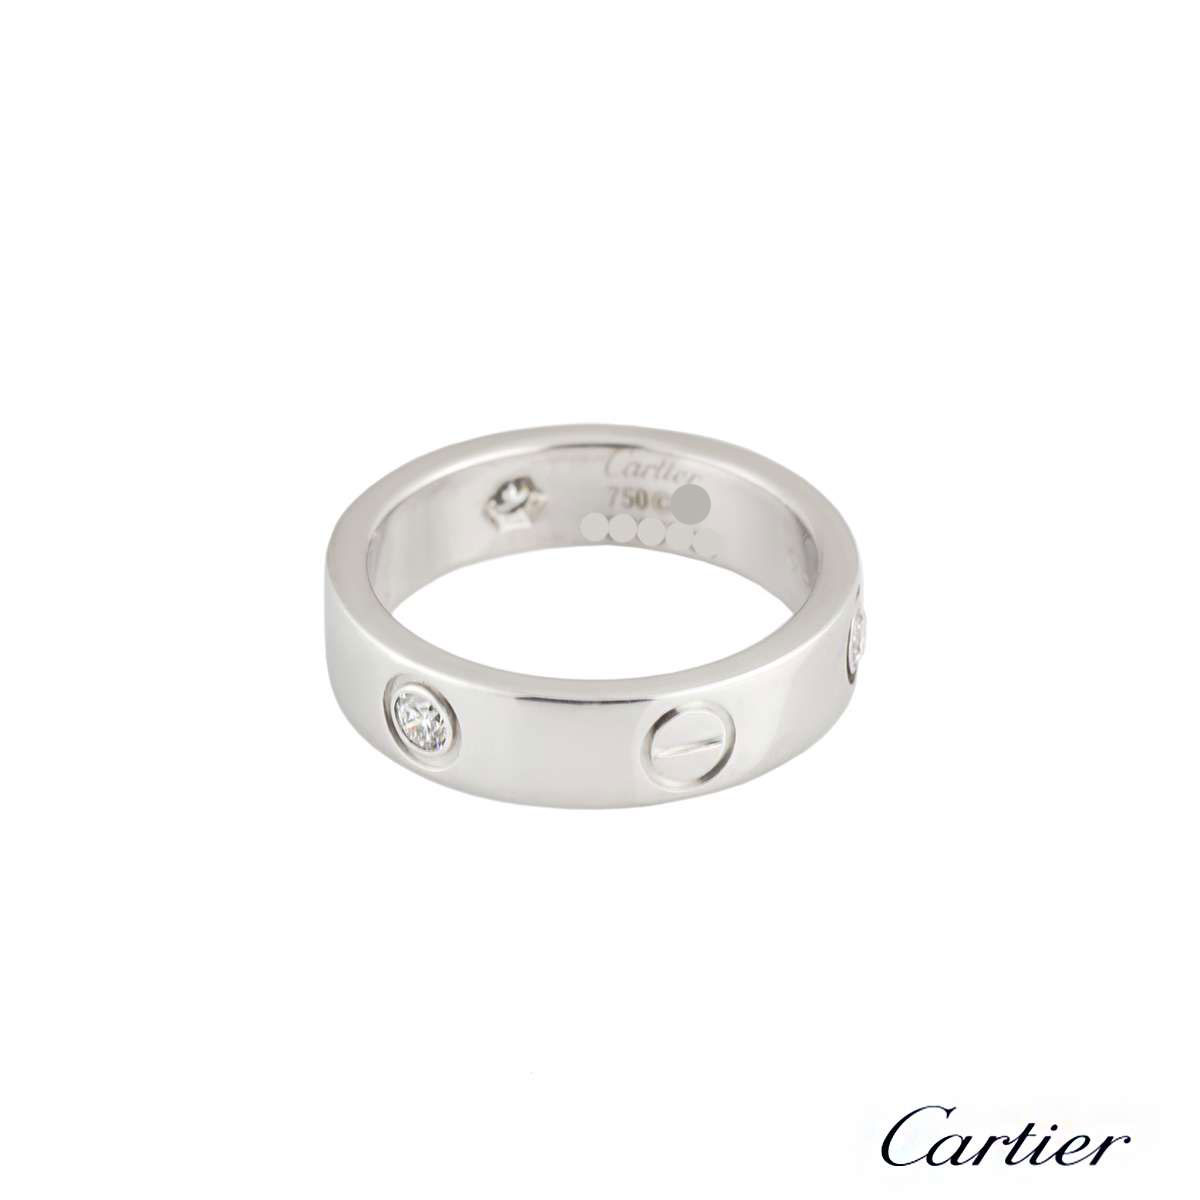 Cartier White Gold Half Diamond Love Ring Size 60 B4032560